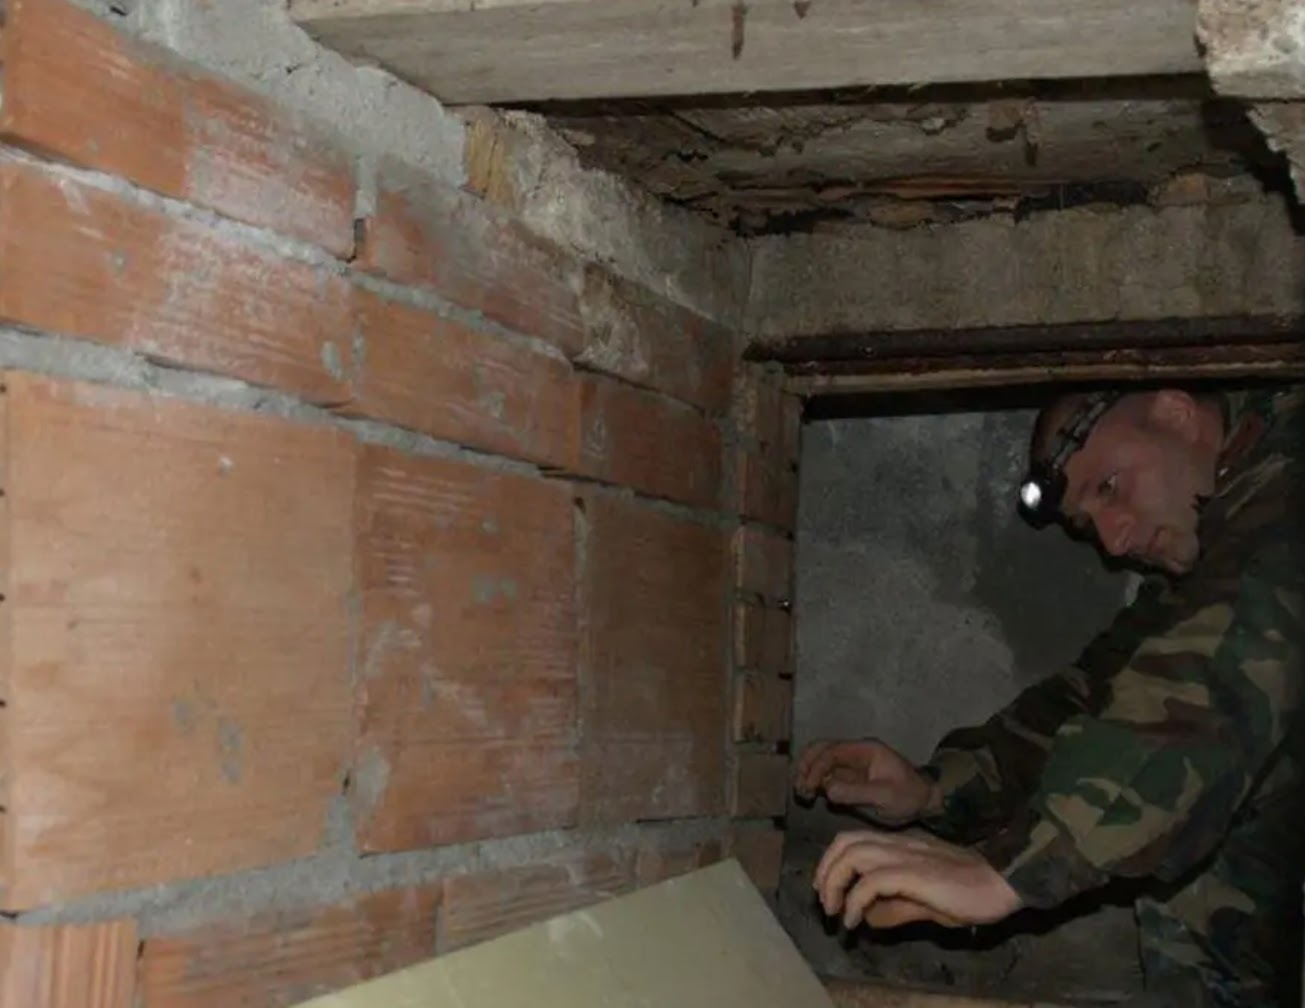 Authorities found a complex of tunnels under the town of Plati, Italy